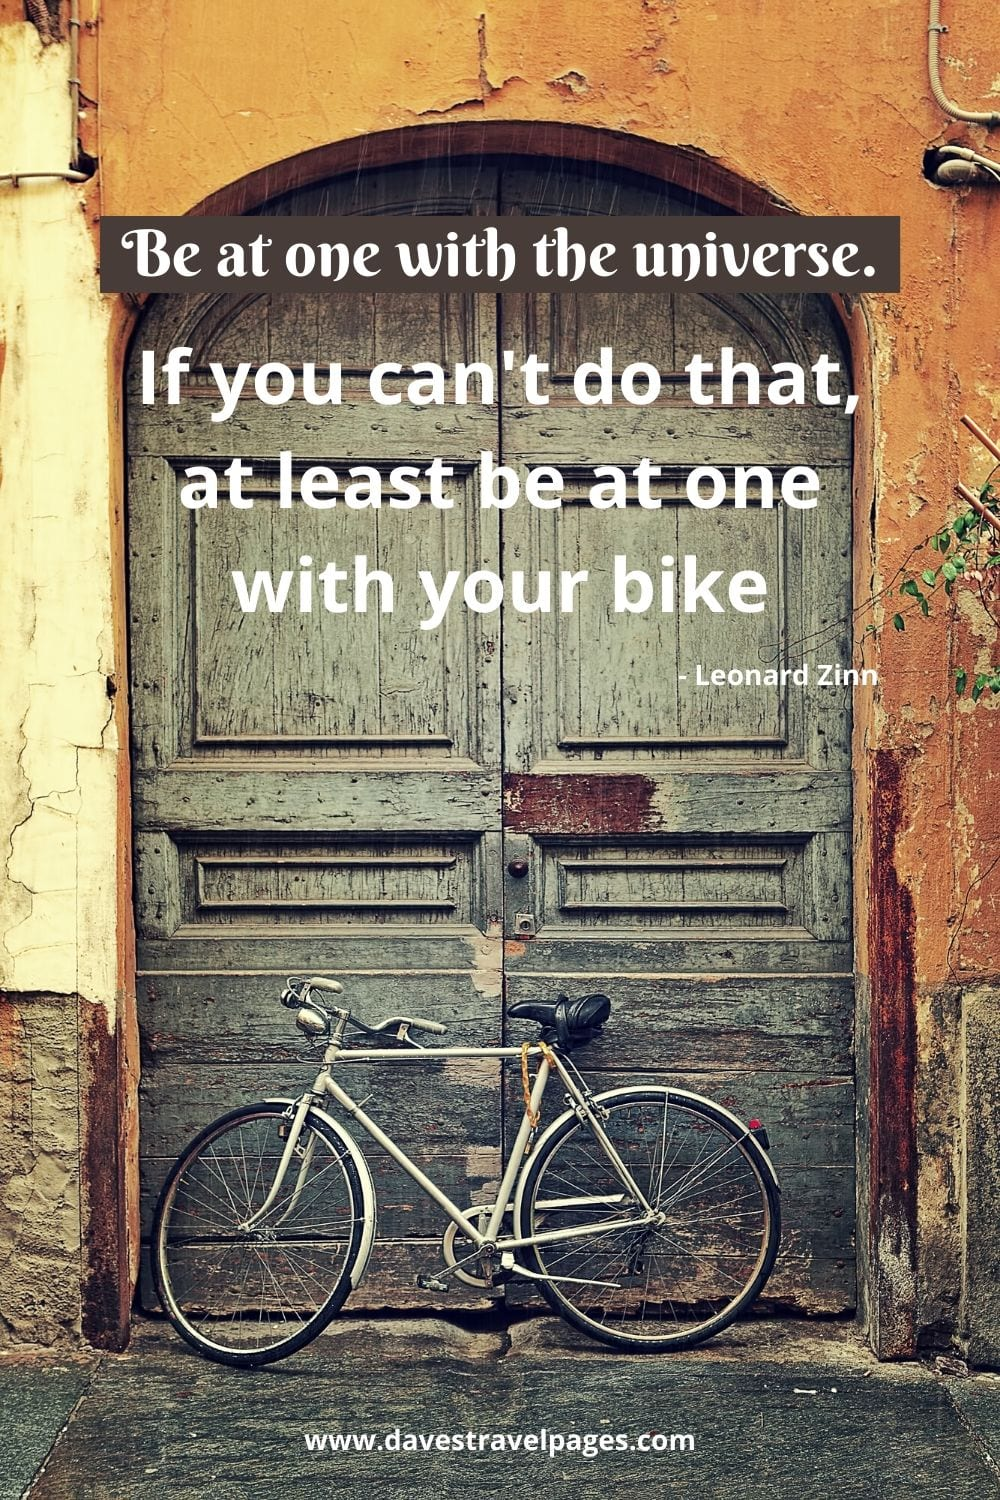 Be at one with the universe. If you can't do that, at least be at one with your bike. - Leonard Zinn